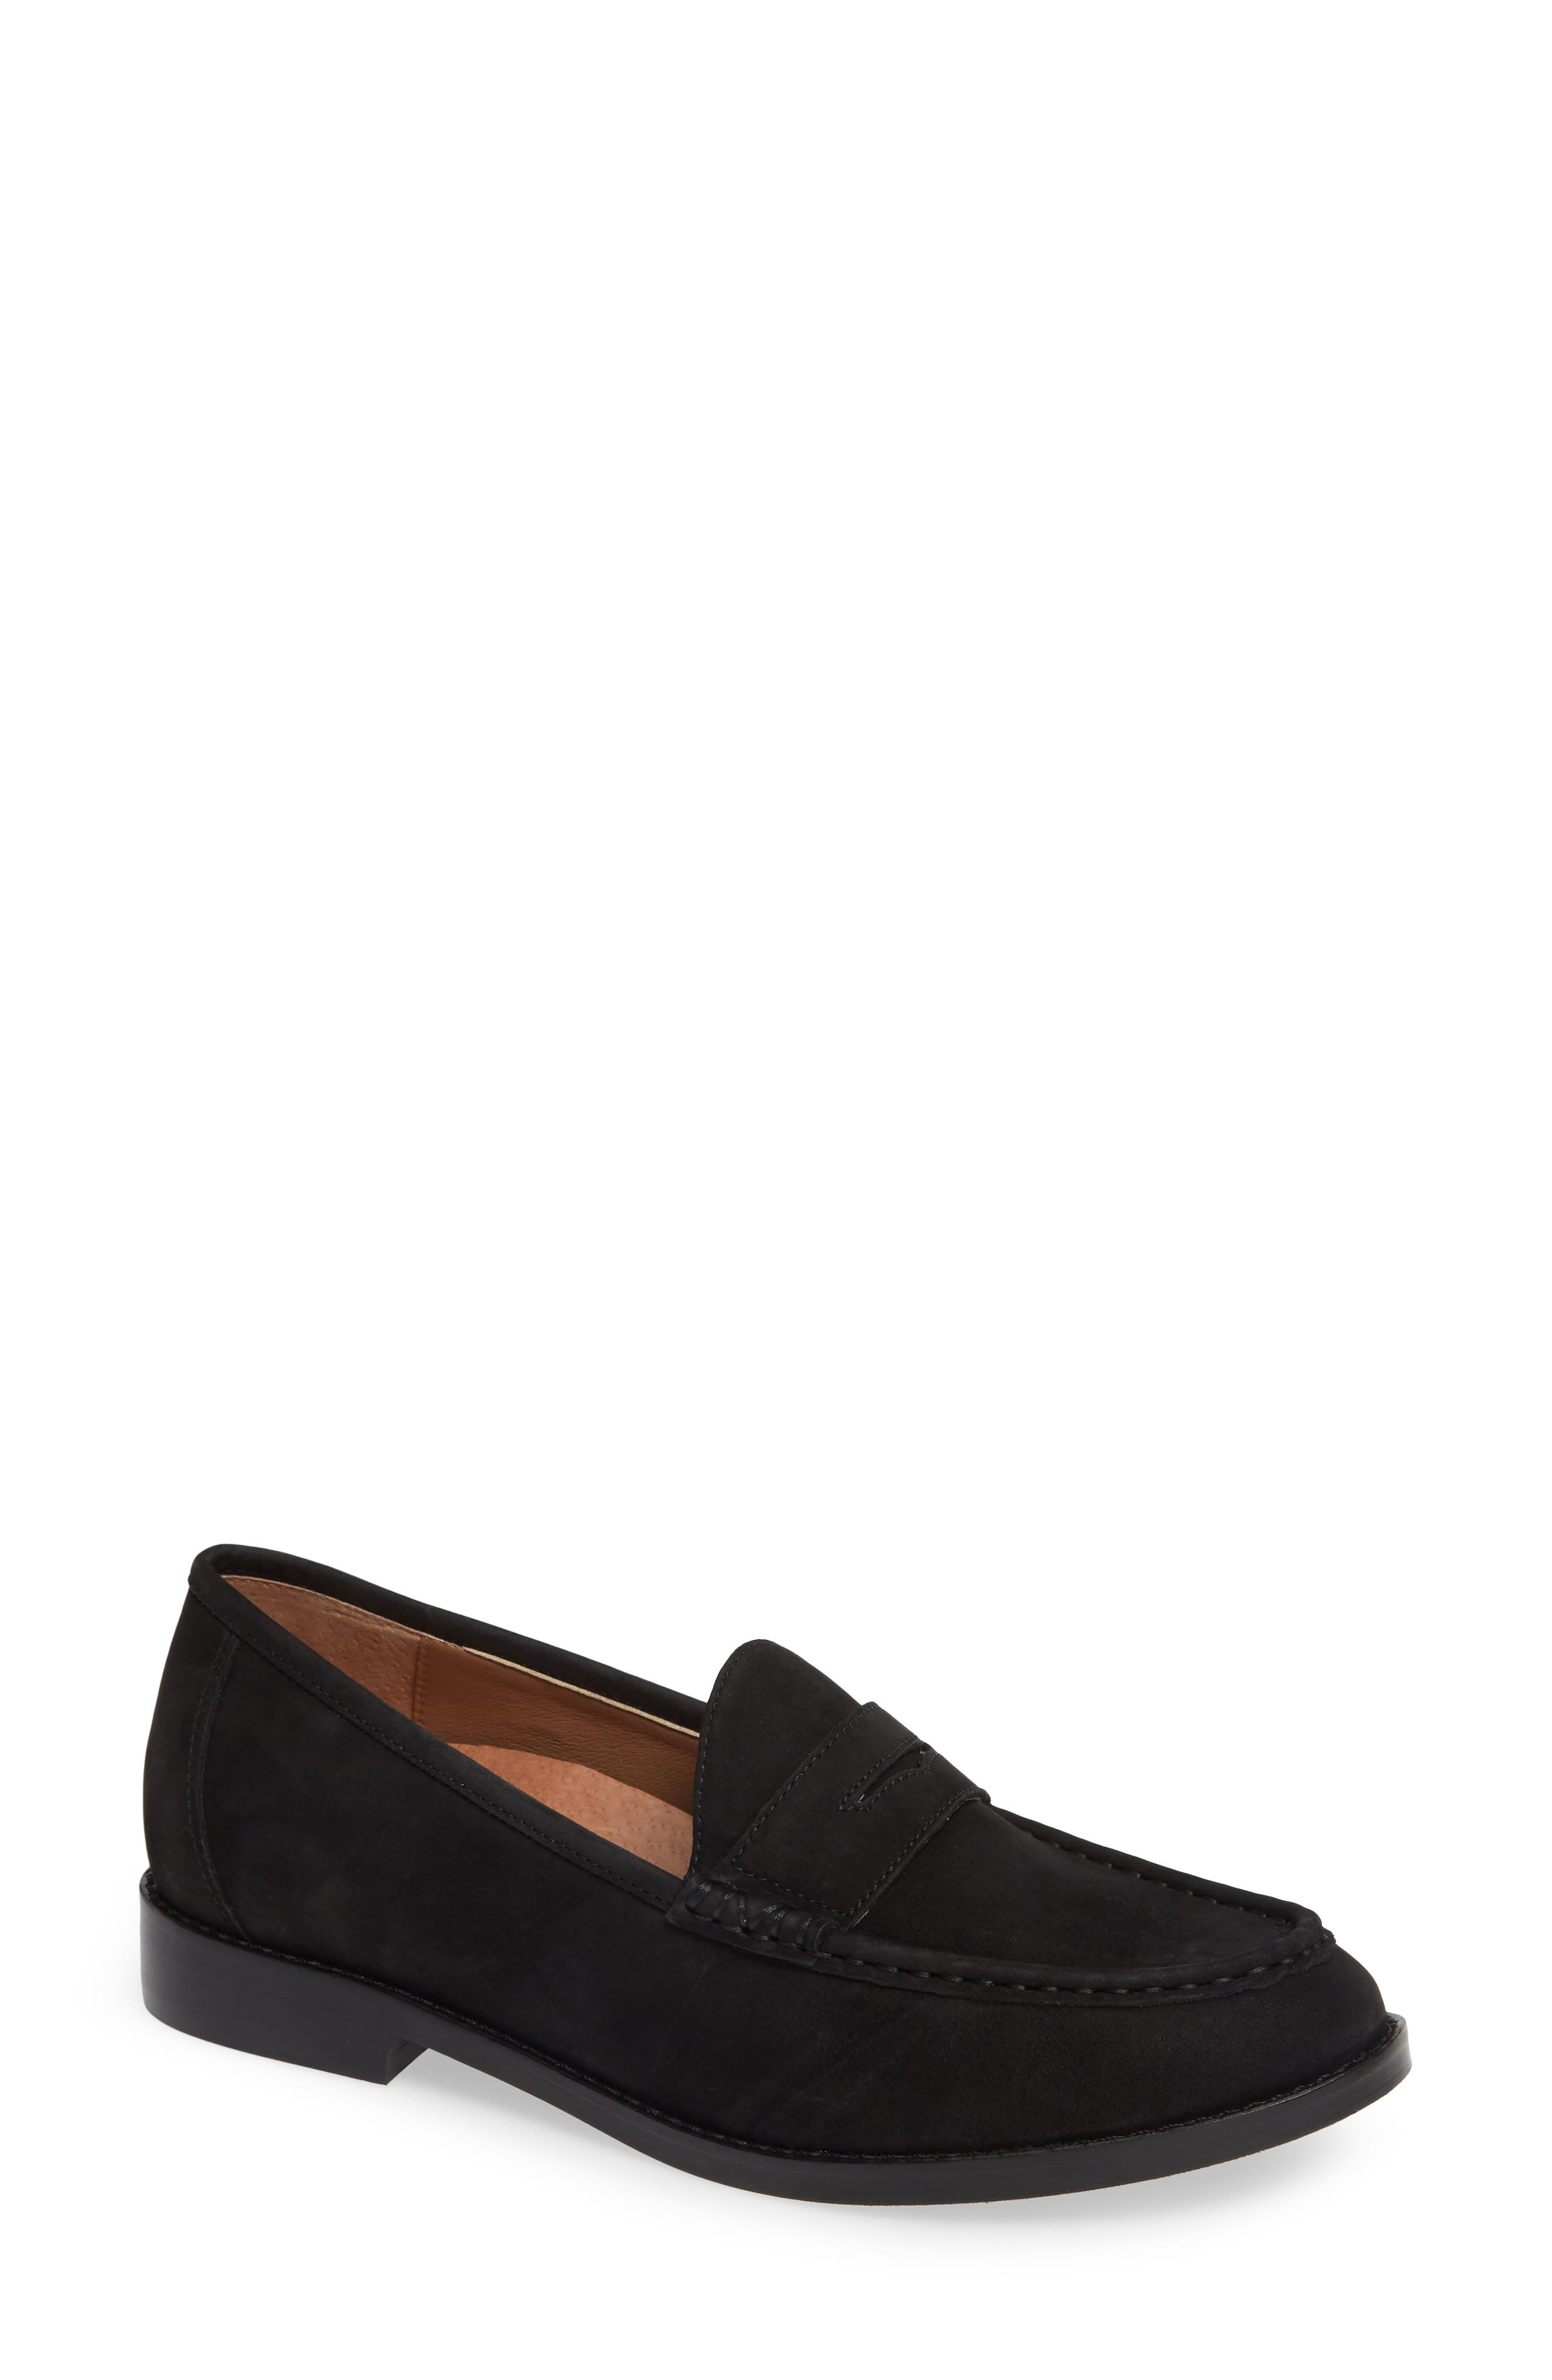 VIONIC Waverly Loafer, Main, color, BLACK LEATHER